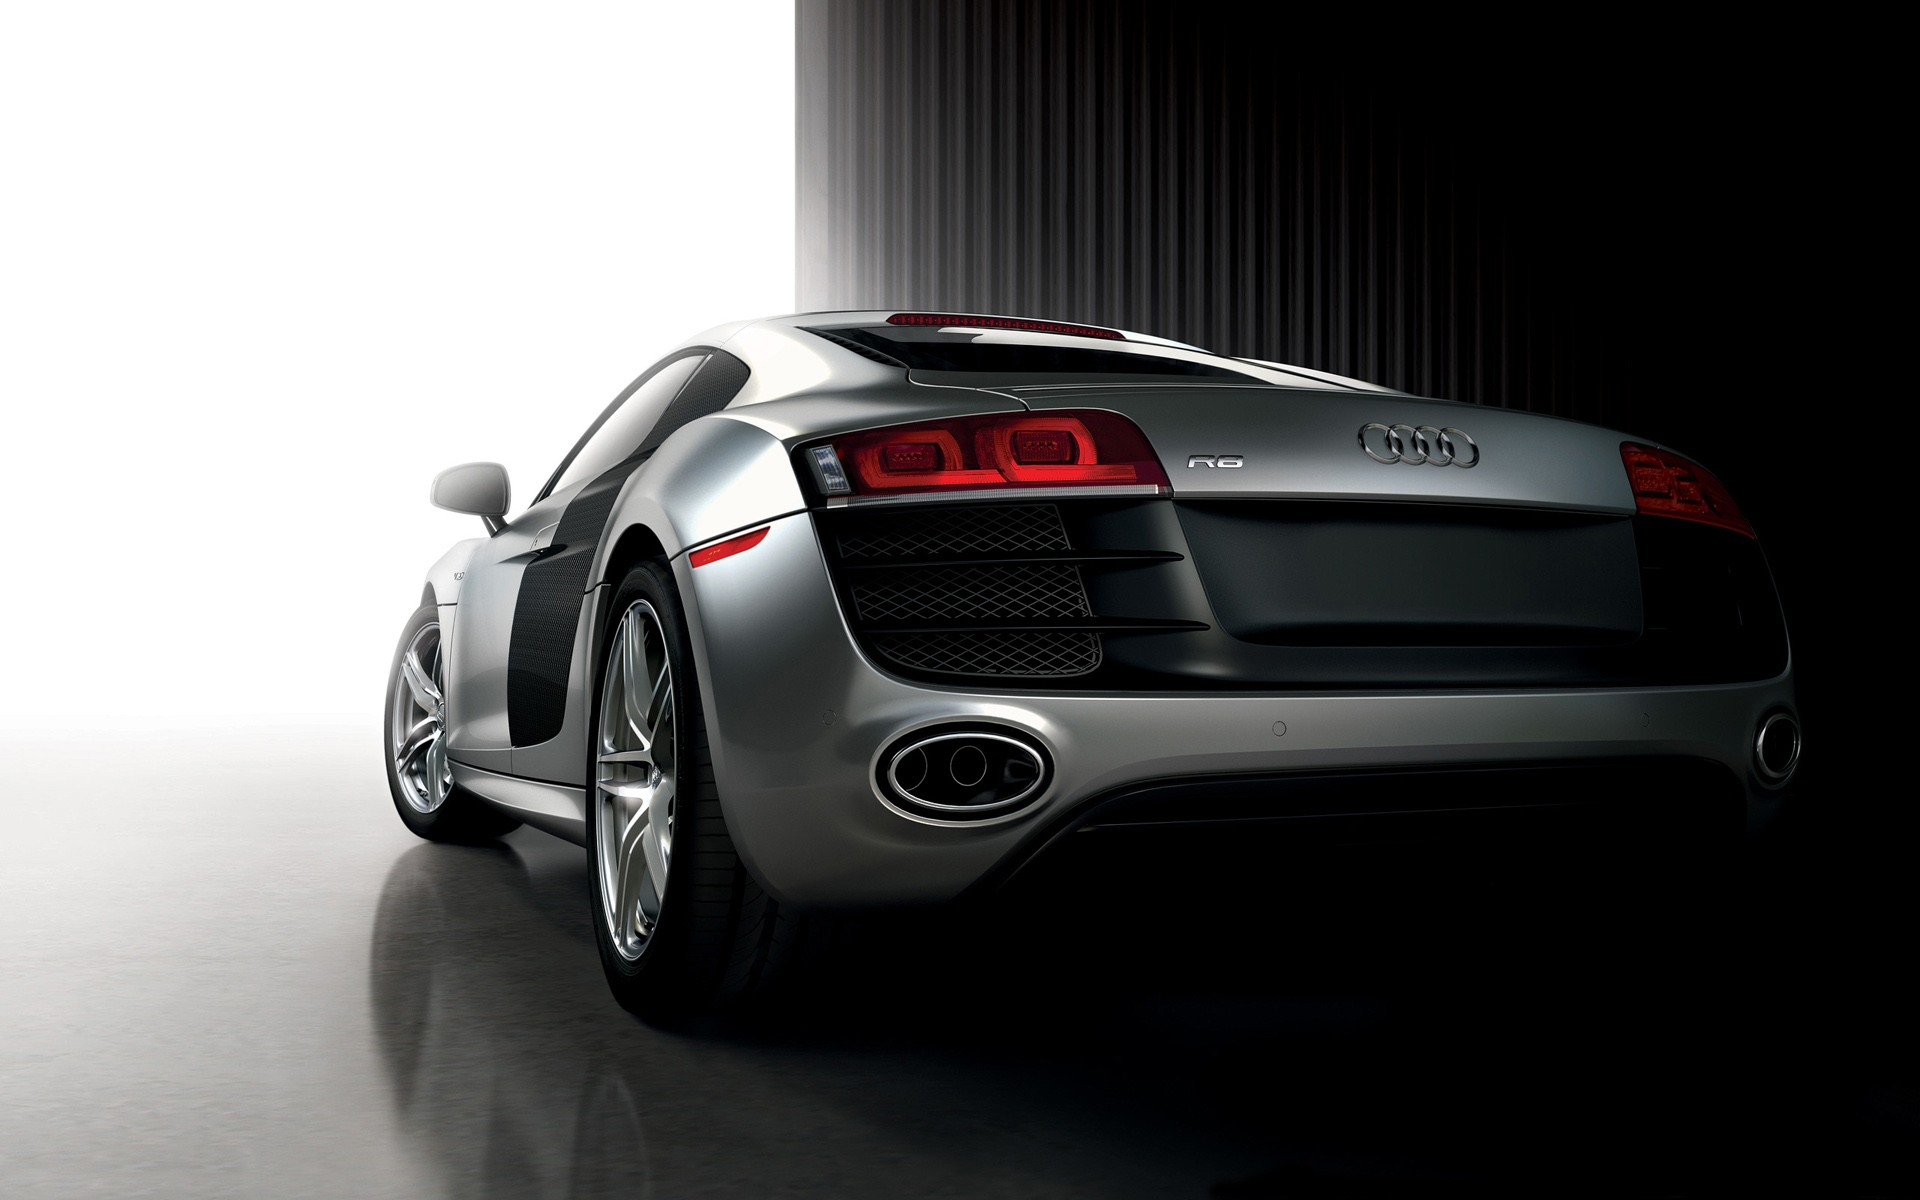 50 Super Sports Car Wallpapers Thatu0026#39;ll Blow Your Desktop Away